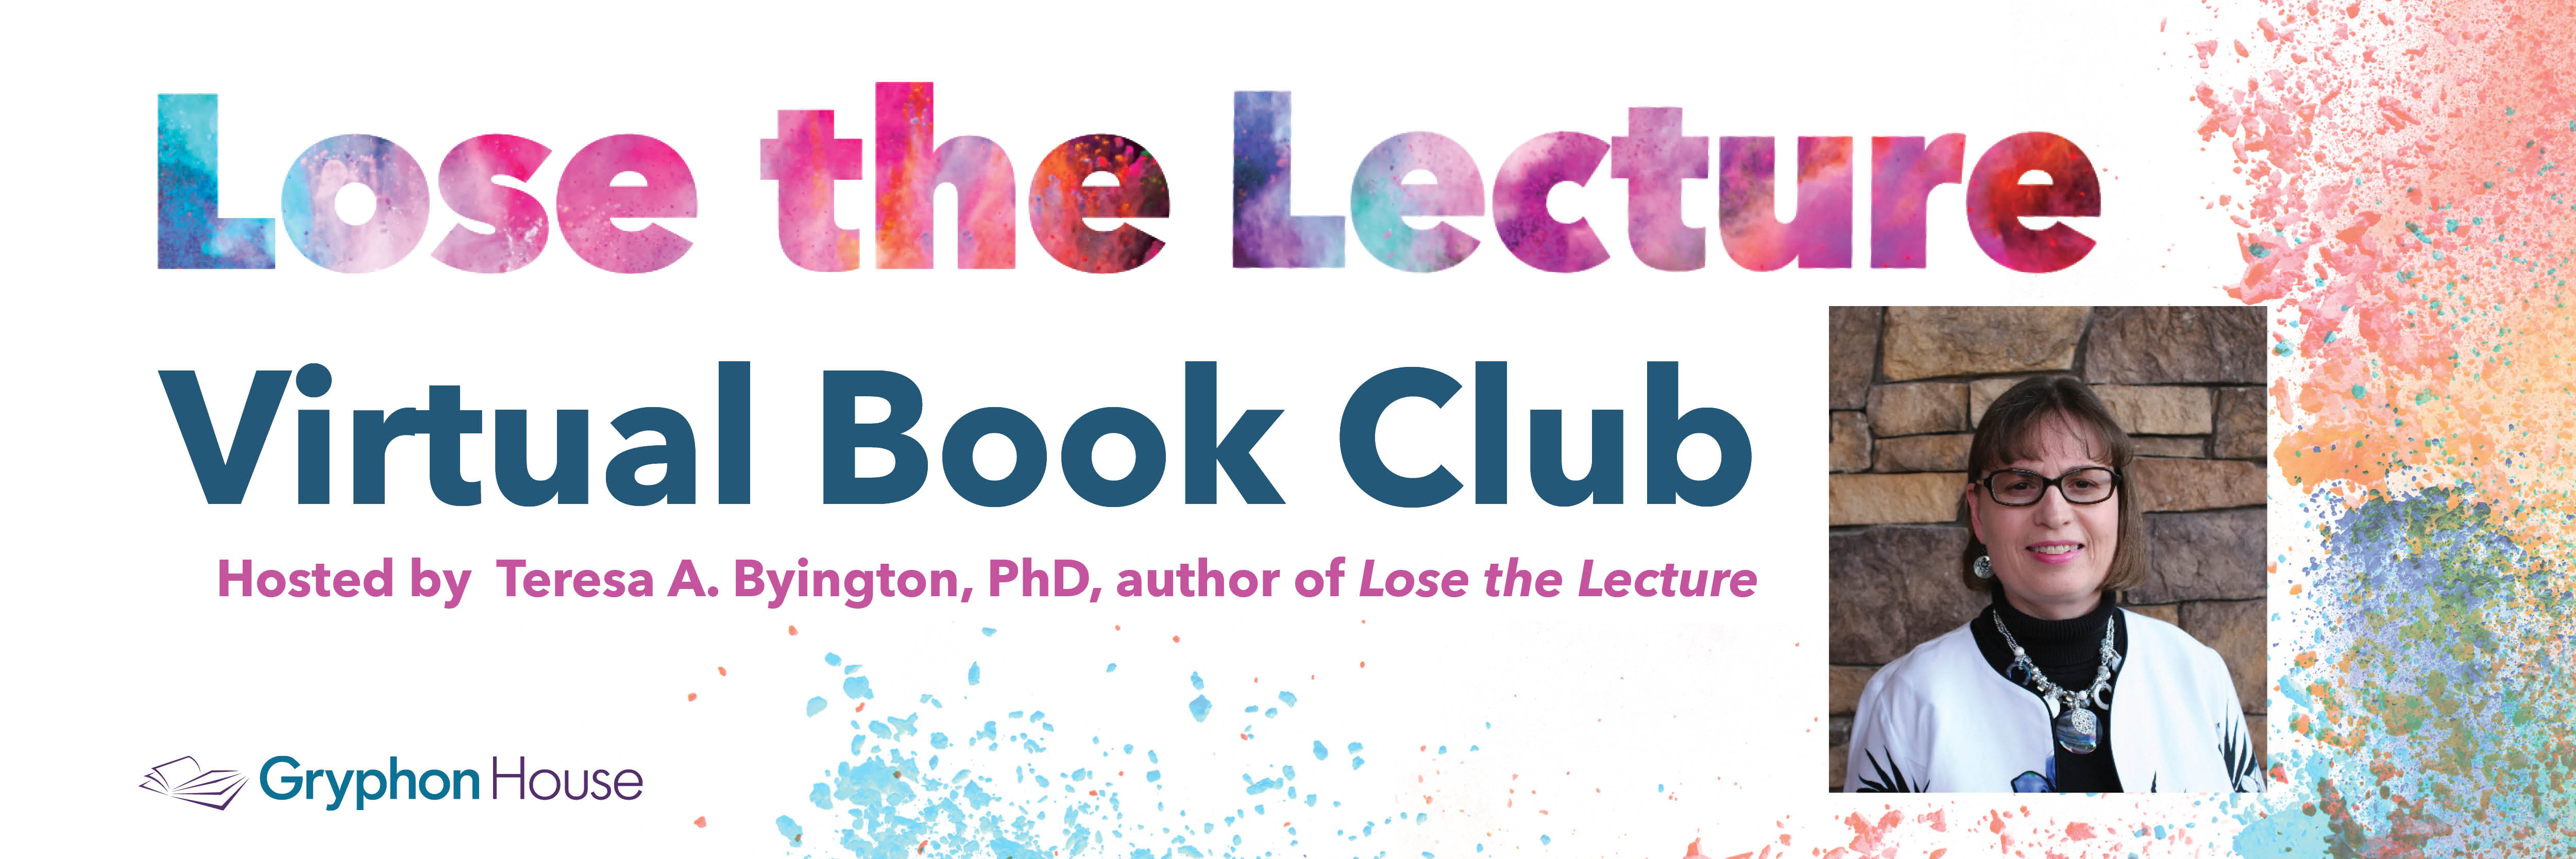 Book club landing page headline banner - 1200x400px lose the lecture